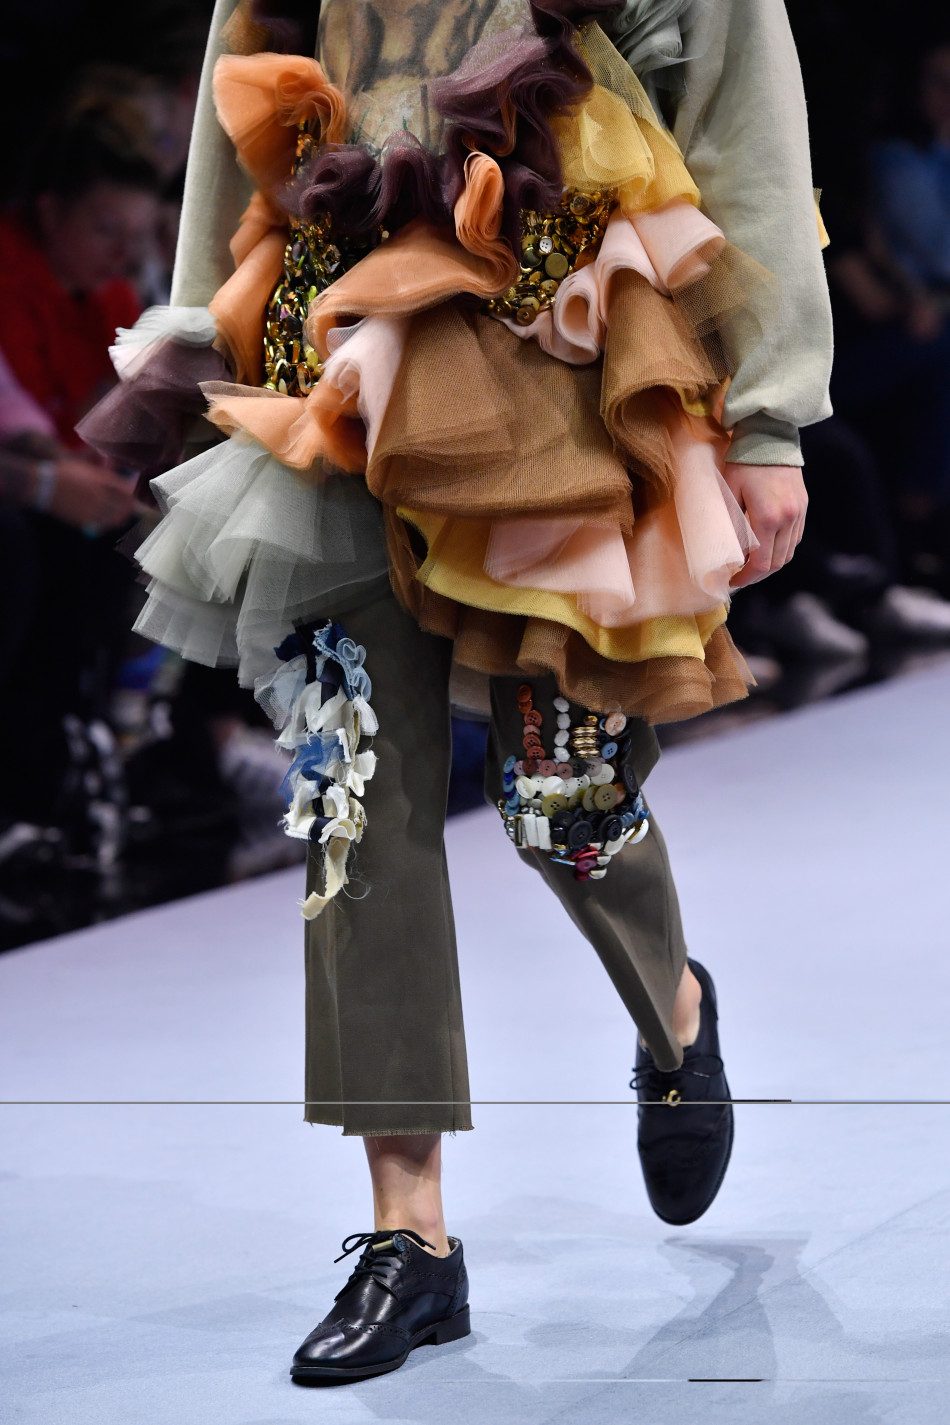 Viktor_Rolf_Bread_and_Butter_by_Getty_Images_15